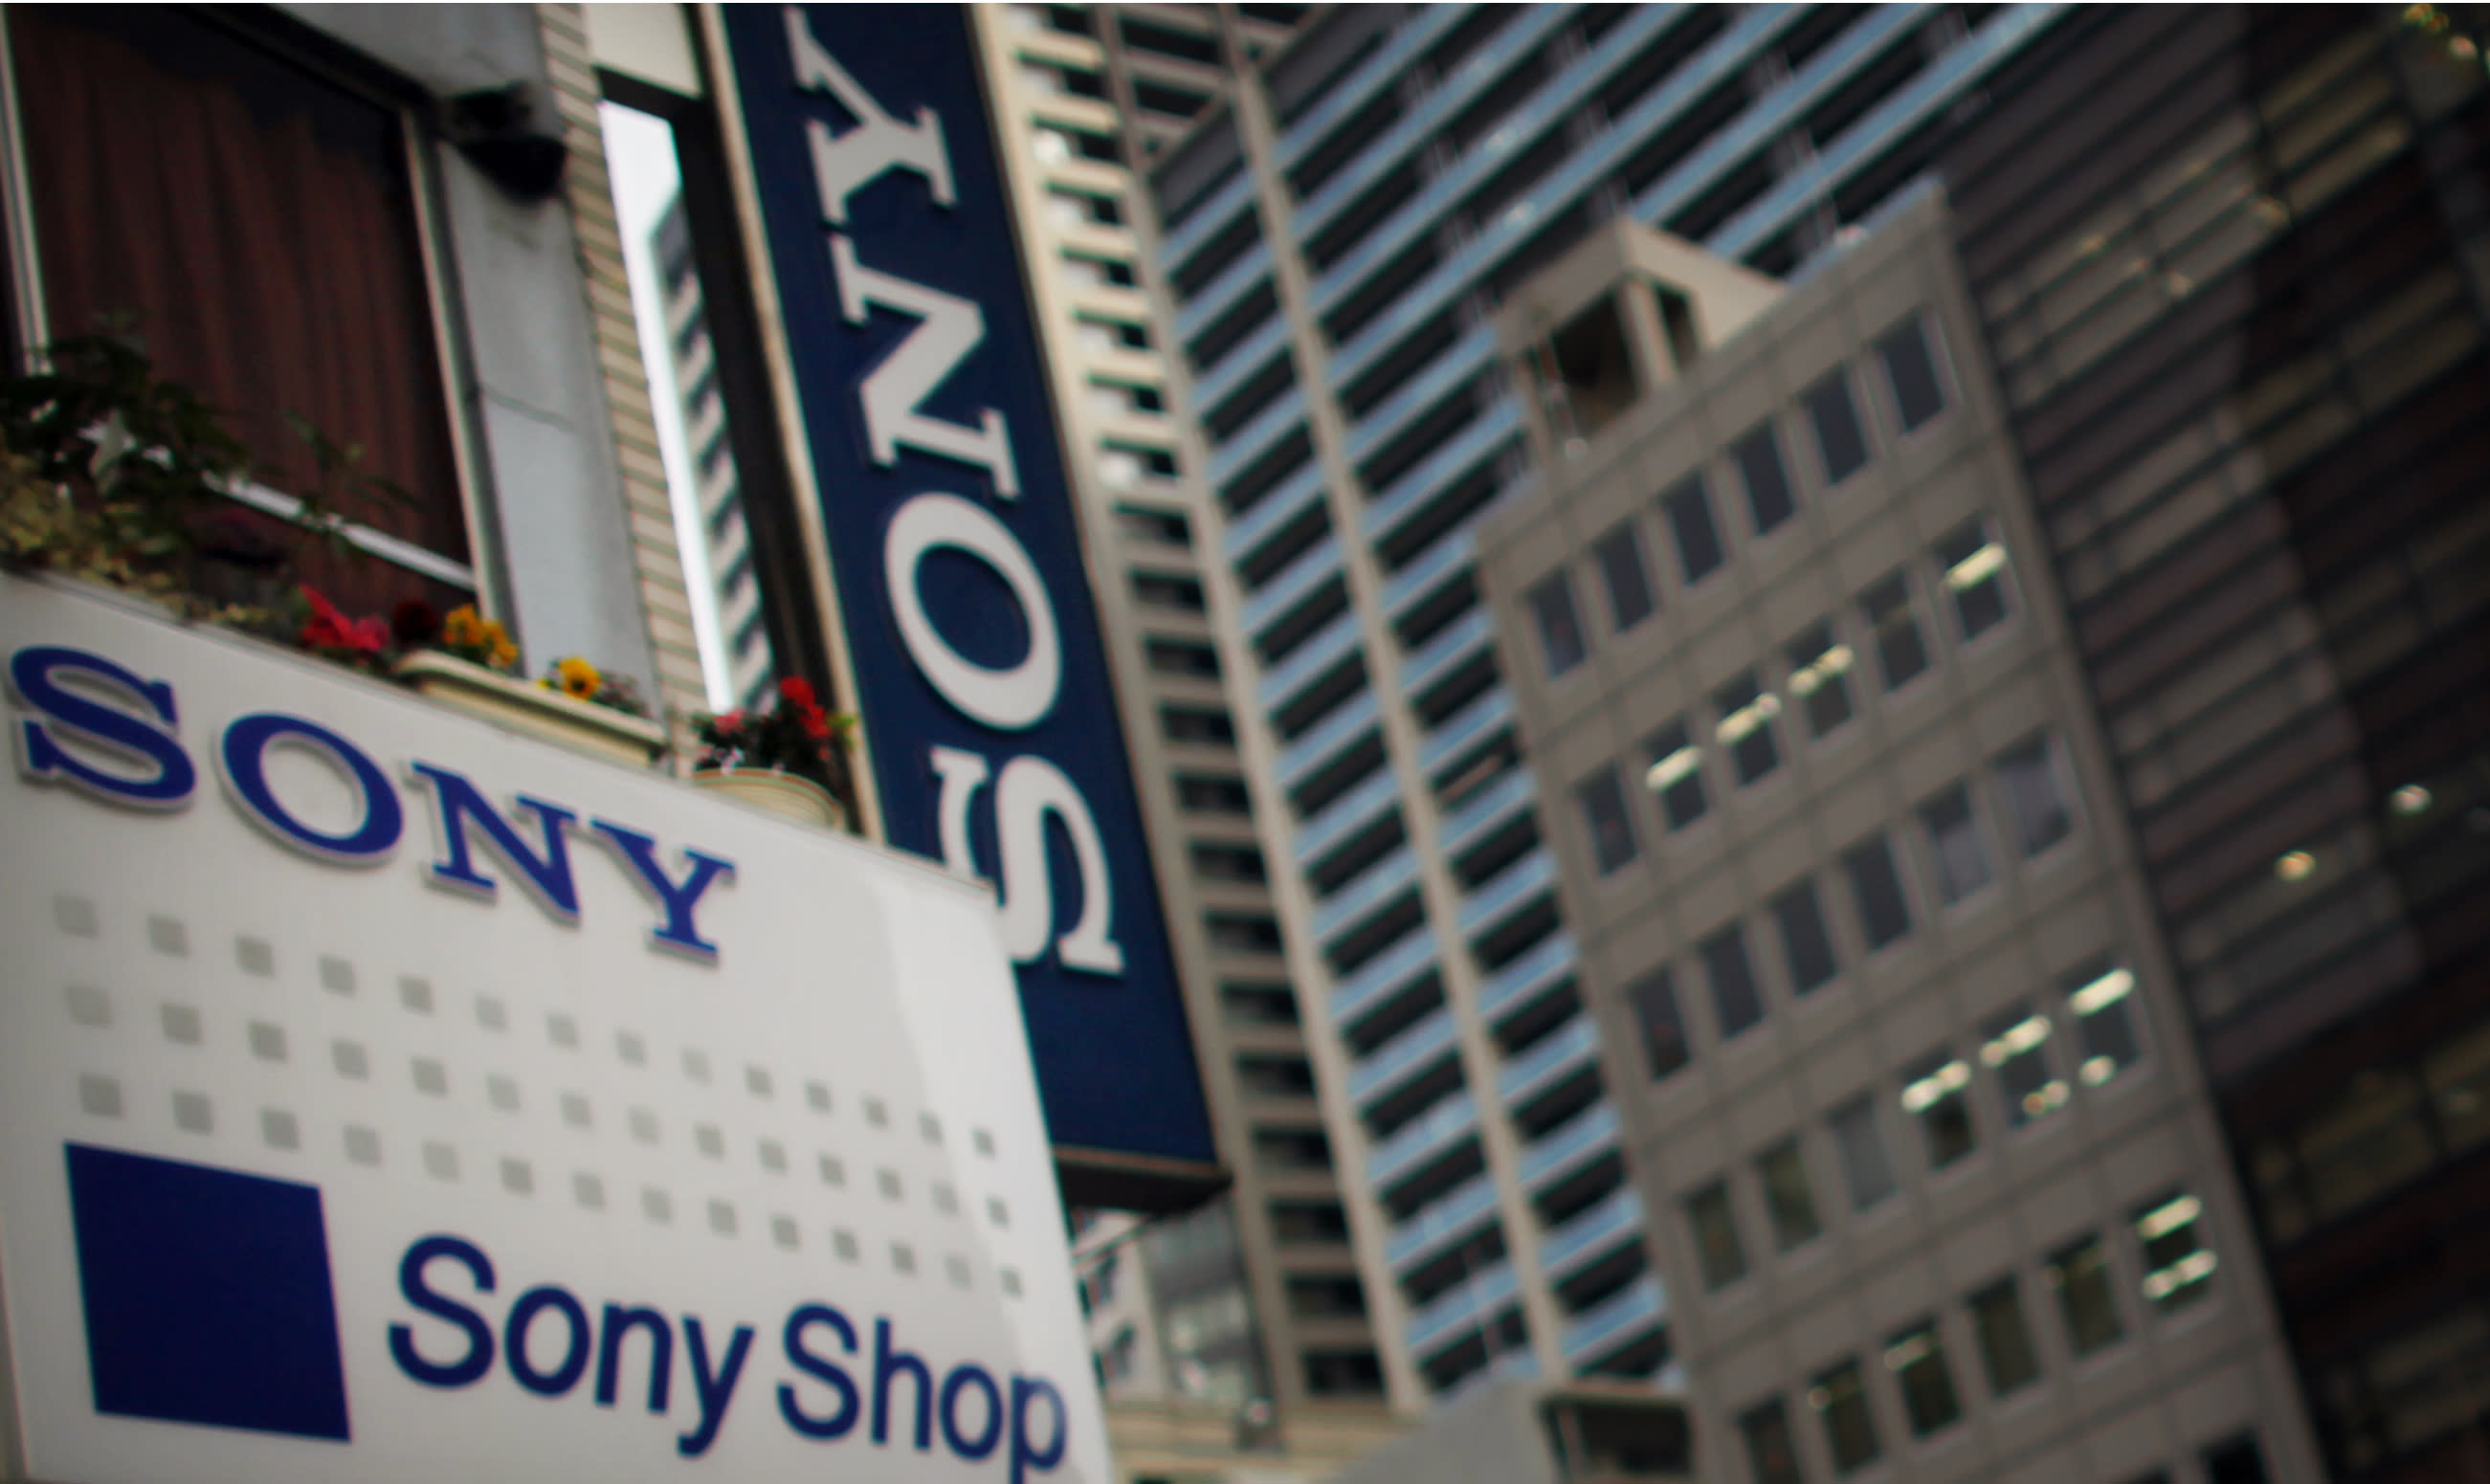 FILE - In this Thursday, Feb. 7, 2013 photo, Sony signs hang from a store in Tokyo. A U.S. hedge fund has proposed that Sony Corp. selling up to 20 percent of its entertainment business to use that money to strengthen its ailing electronics unit. In a May 14 letter to Sony President Kazuo Hirai, first published in The New York Times, Daniel Loeb, chief executive of hedge fund Third Point, suggested Sony take 15 percent to 20 percent of the entertainment unit public. (AP Photo/Junji Kurokawa, File)